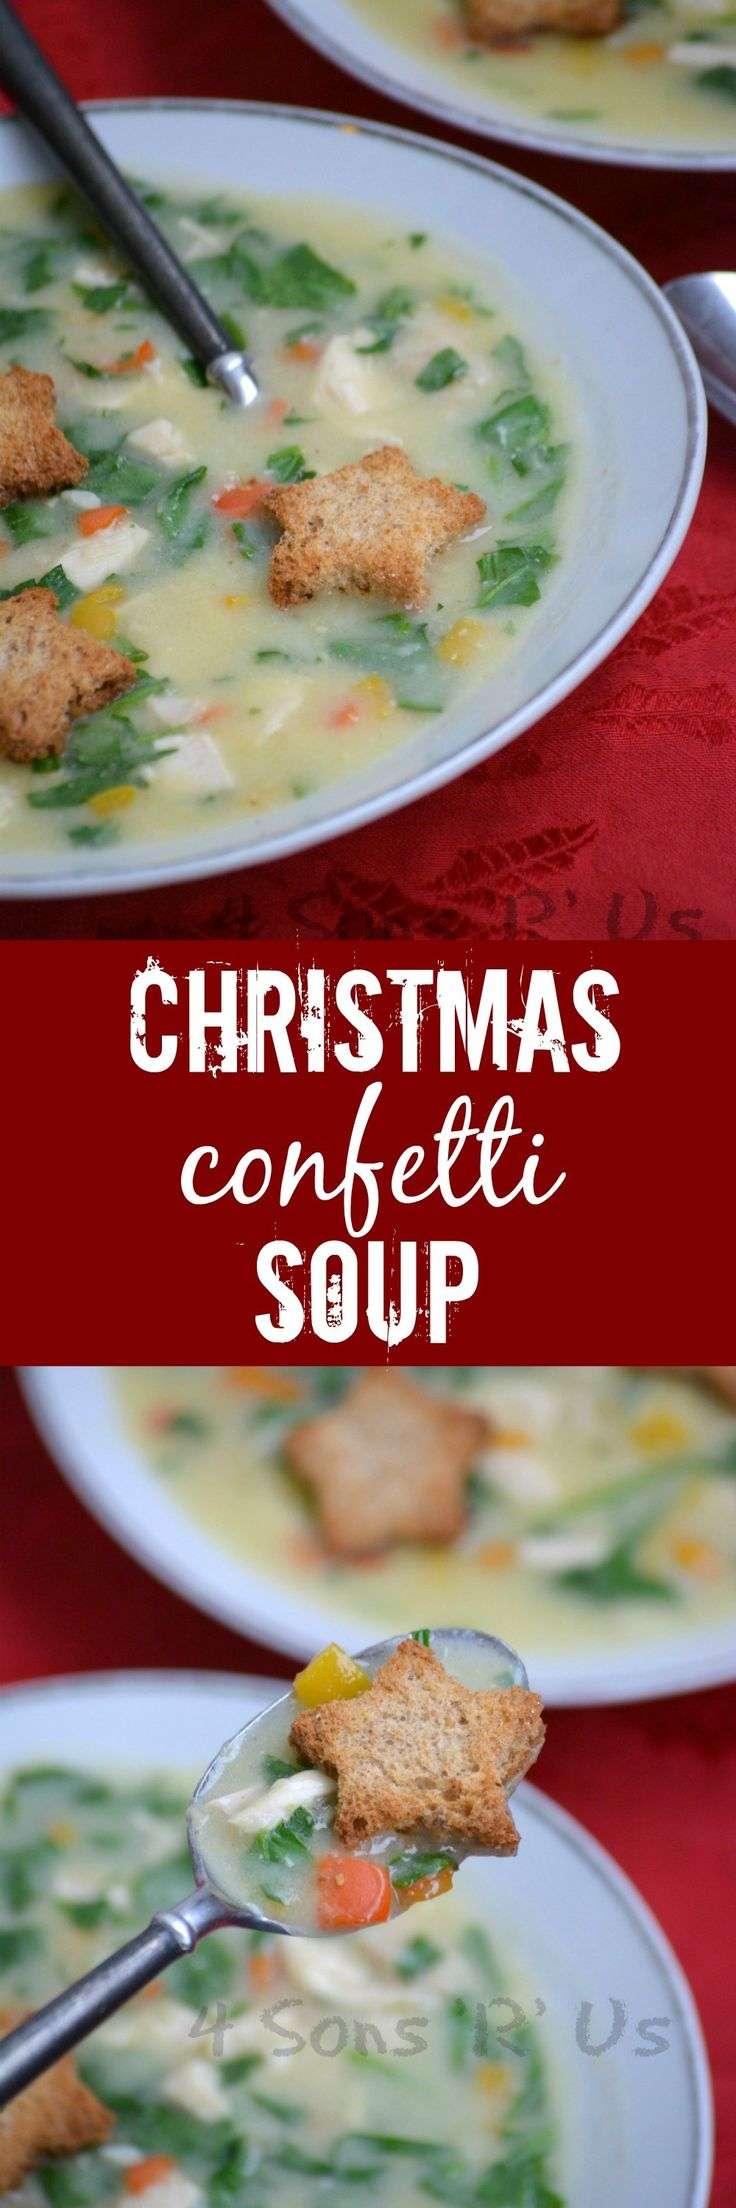 A festive chicken soup that's perfect for the holiday season, this Christmas Confetti Chicken Soup features green baby spinach. It's speckled with colorful sweet peppers and topped with fun star-shaped croutons, making it a yummy, festive, warm bowl of cheer.